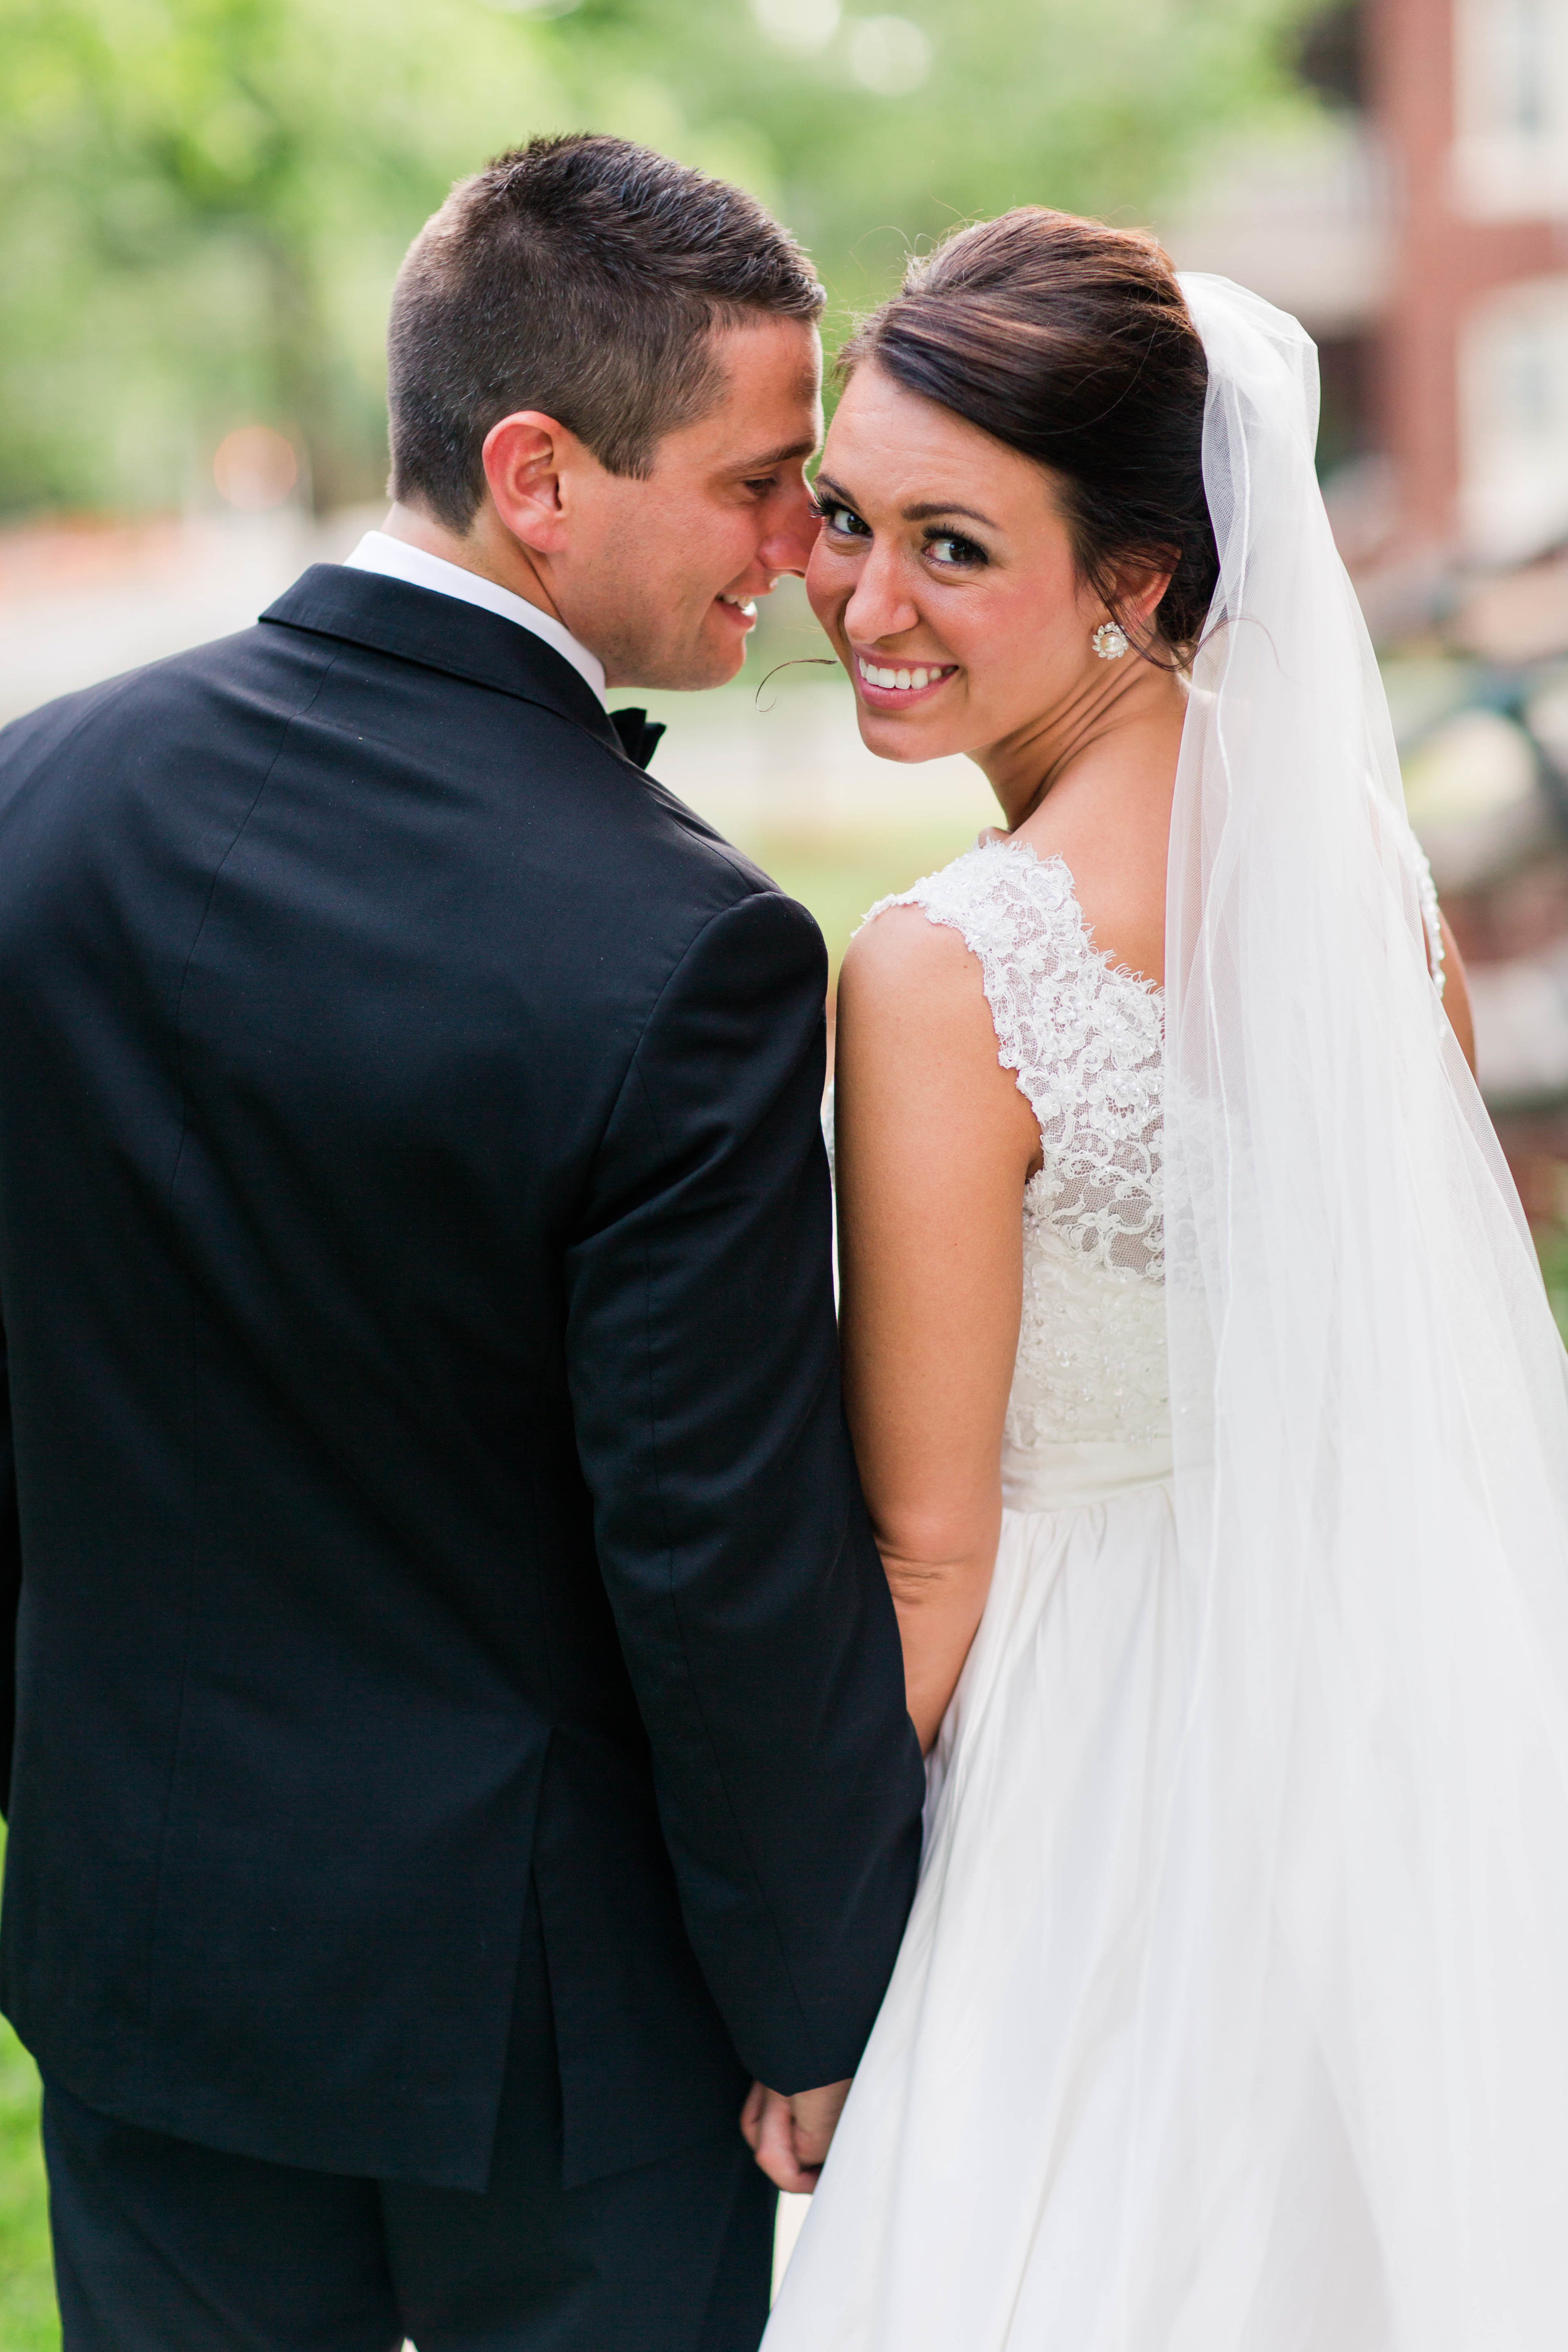 Magliocco Bride and Groom_113.jpg